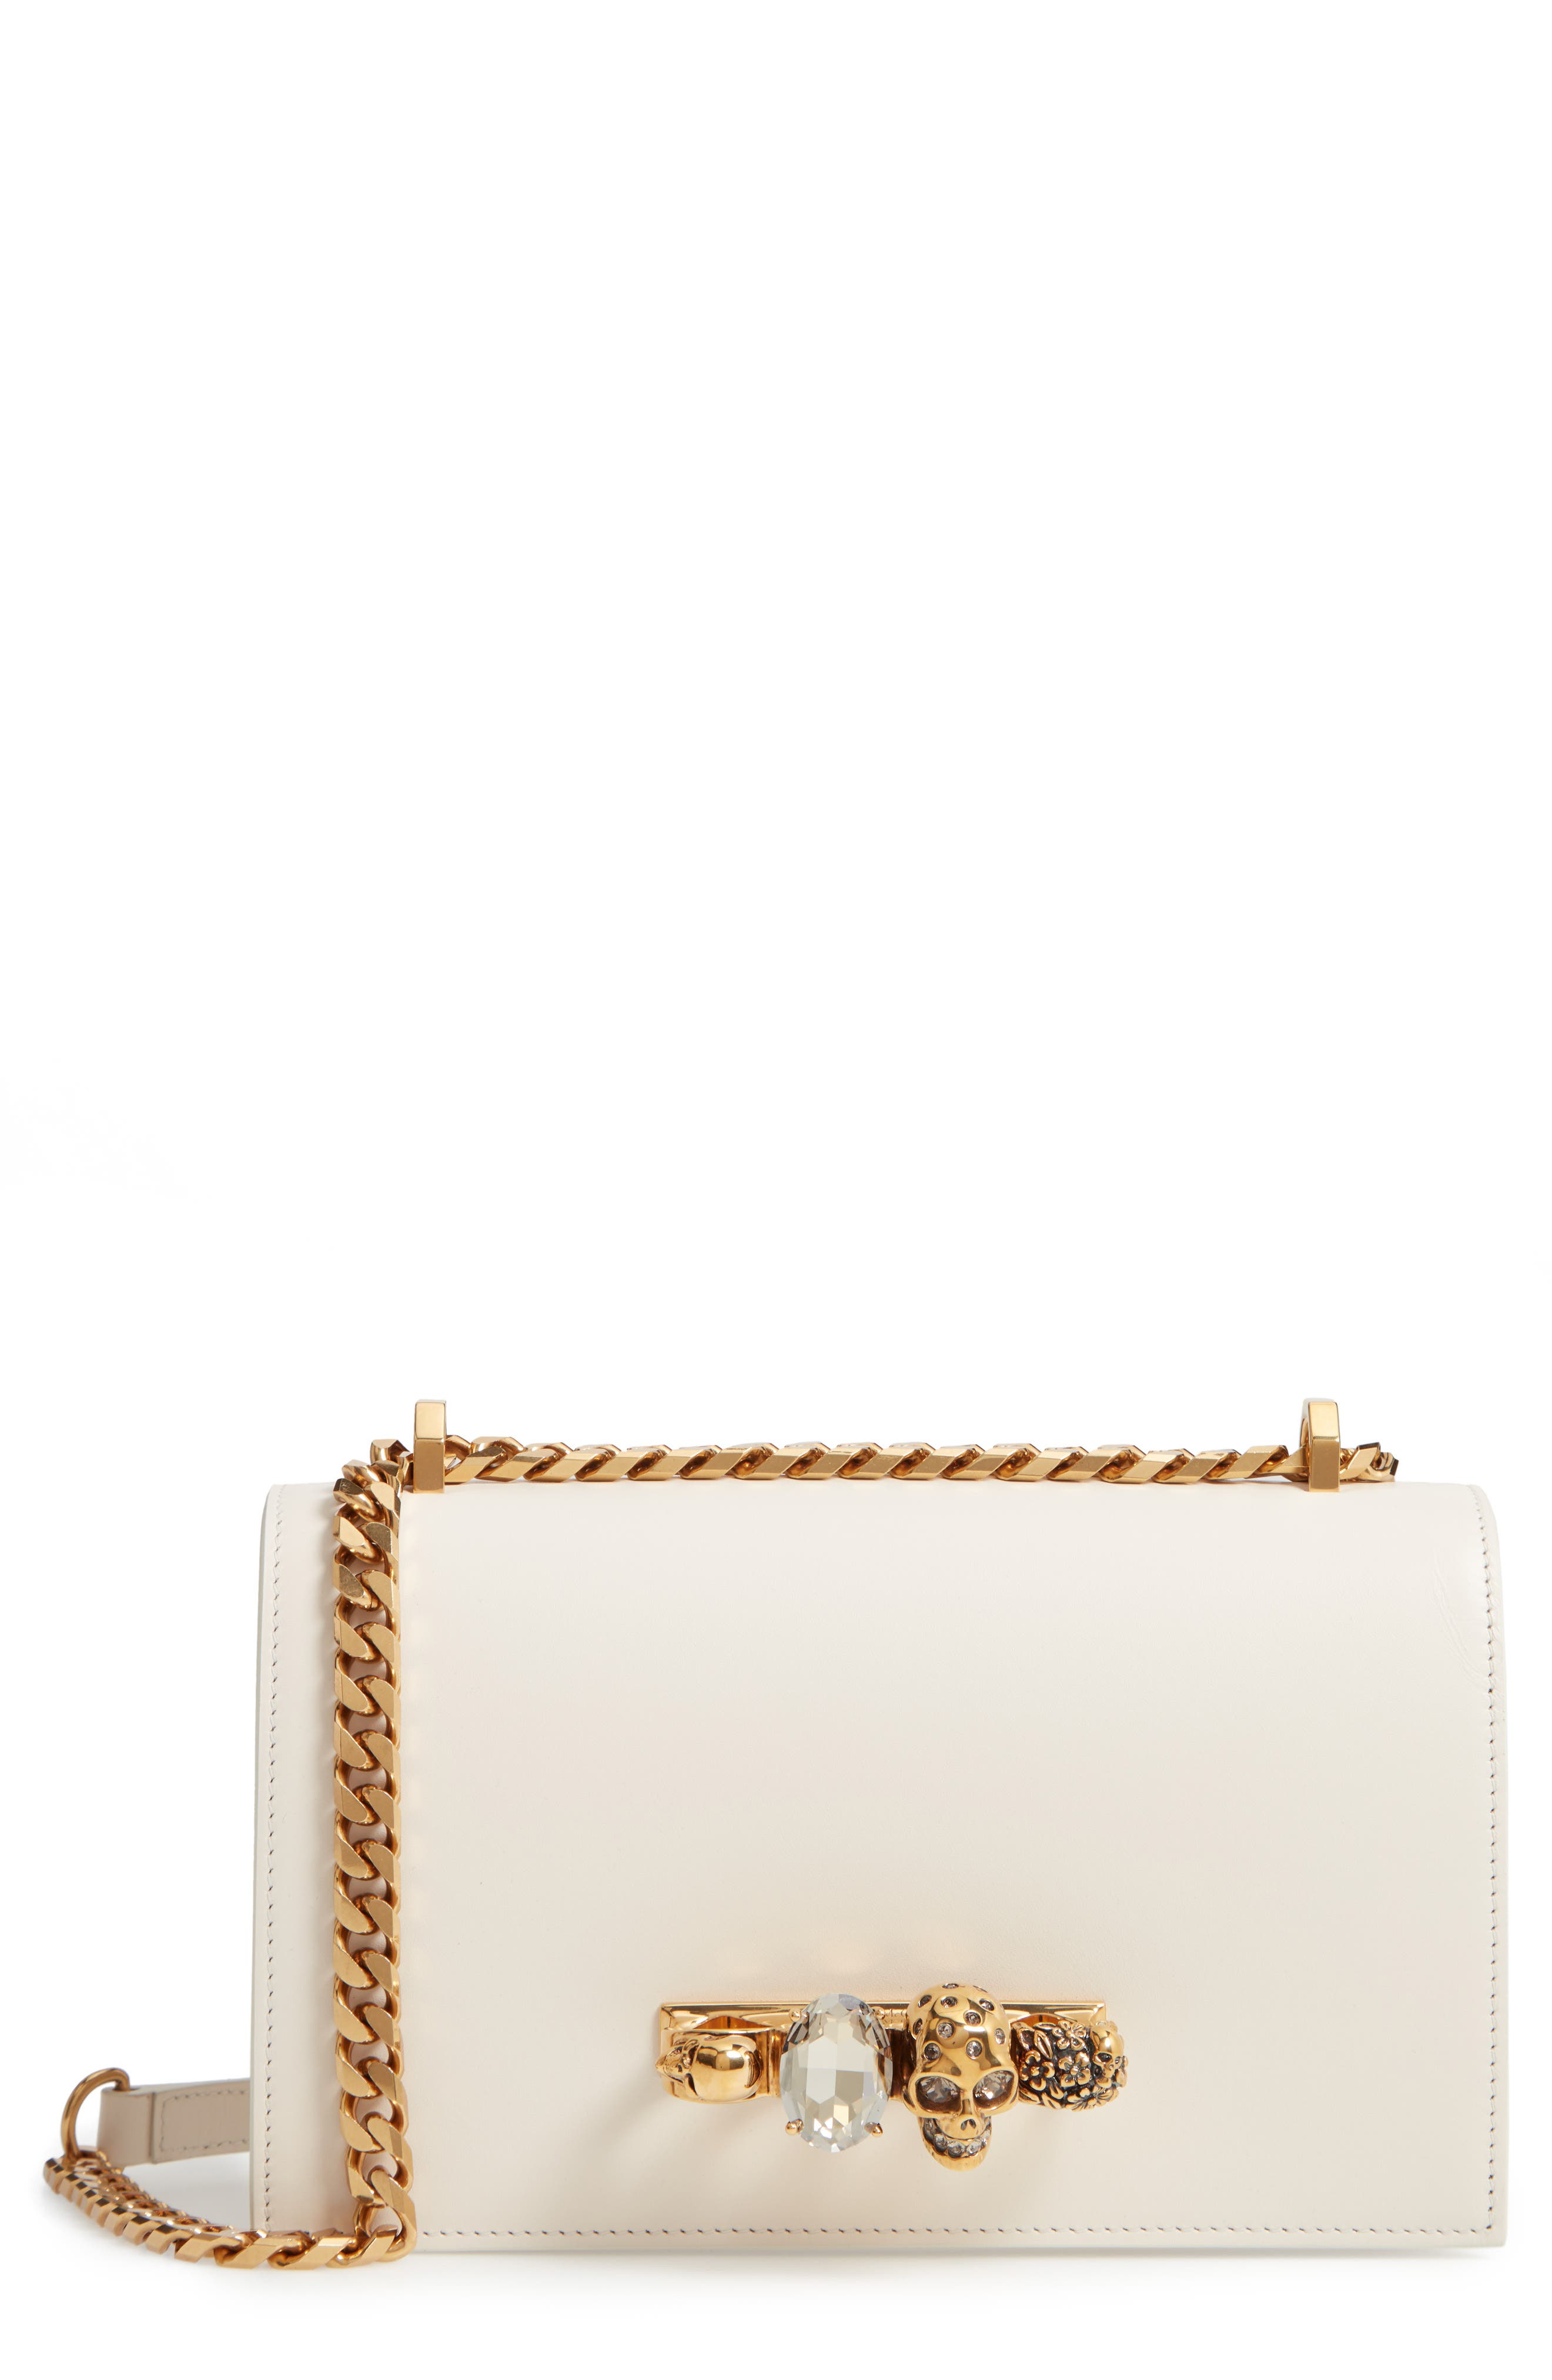 ALEXANDER MCQUEEN Leather Crossbody Bag, Main, color, OFF WHITE